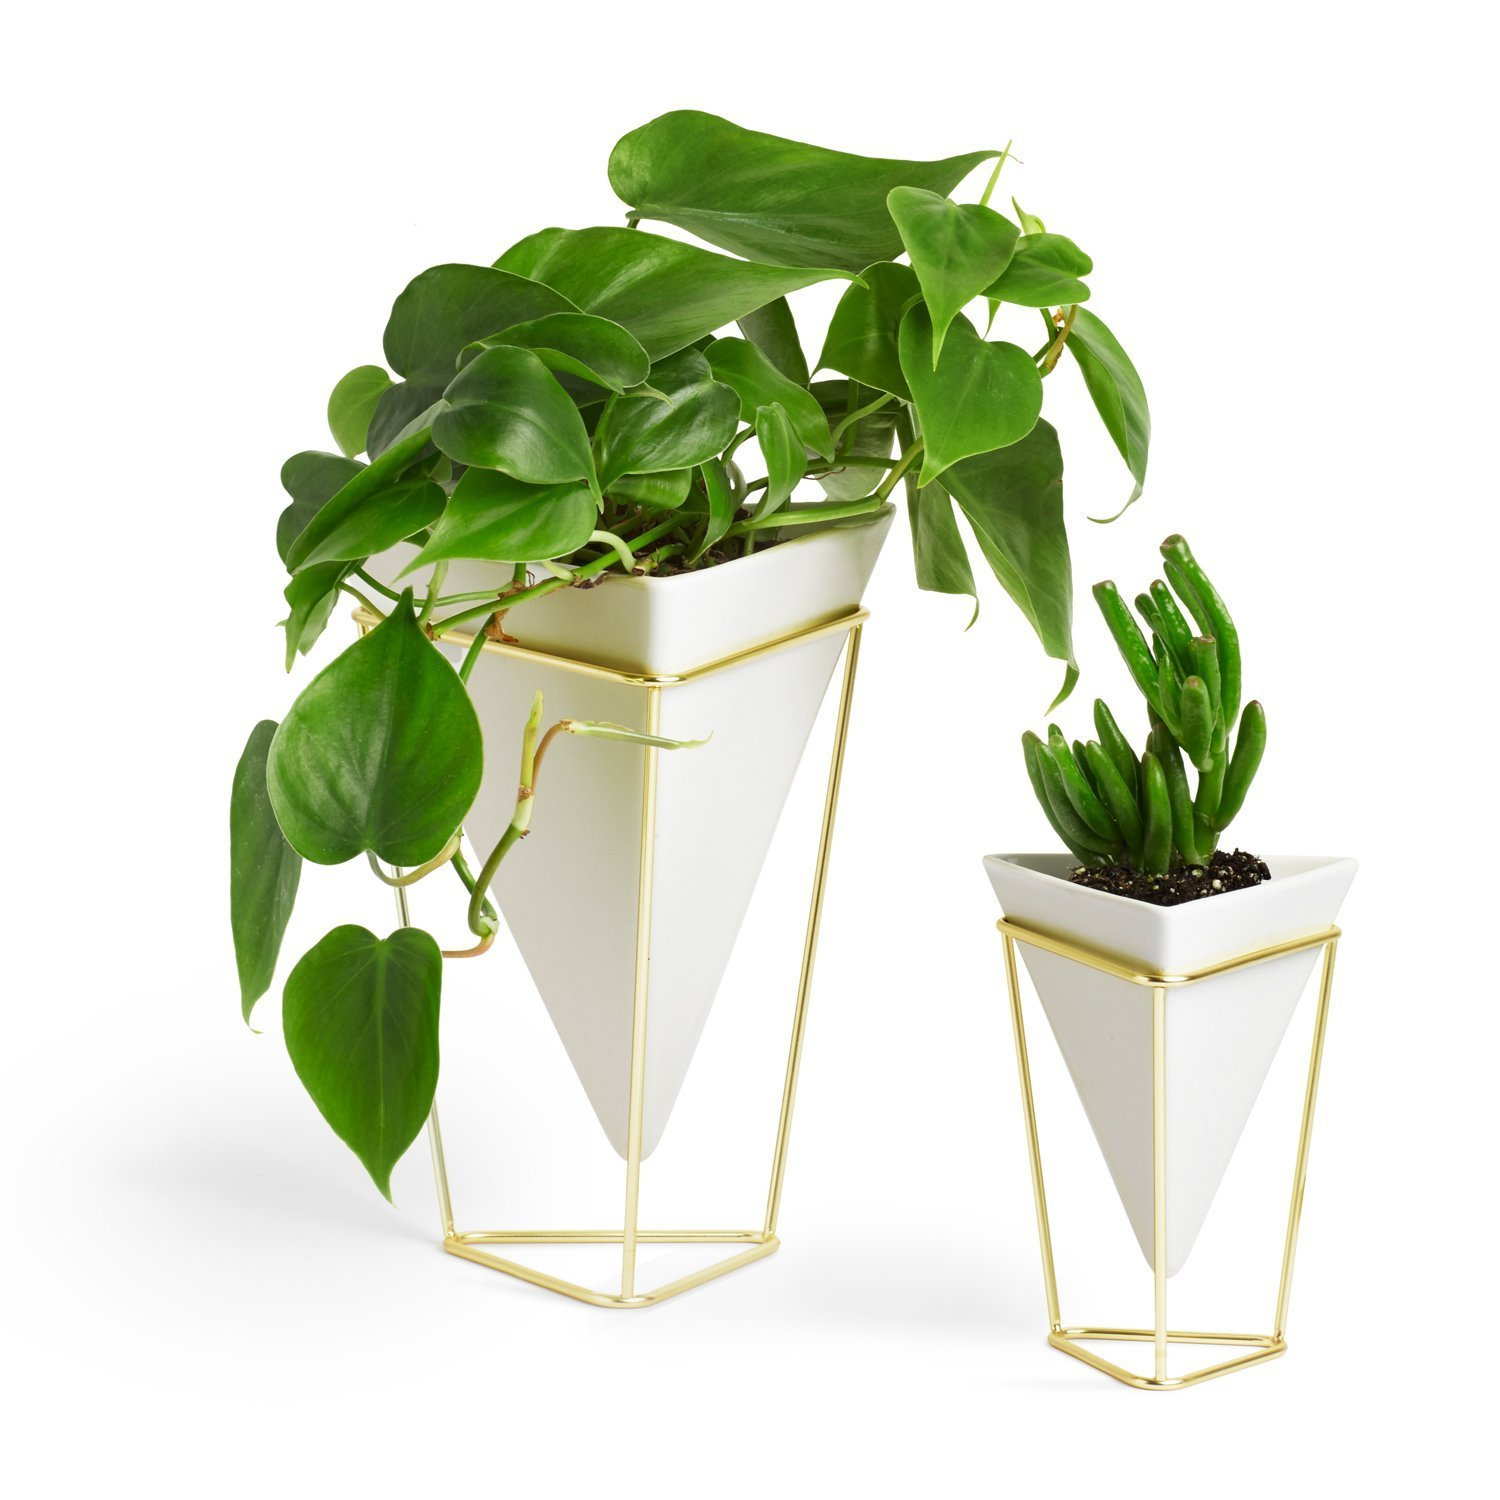 Umbra Trigg Desktop Planter Vase & Geometric Container – Great For Succulent Plants, Air Plant, Mini Cactus, Faux Plants And More, White Ceramic/brass Within Trigg Ceramic Planter Wall Decor (View 13 of 30)